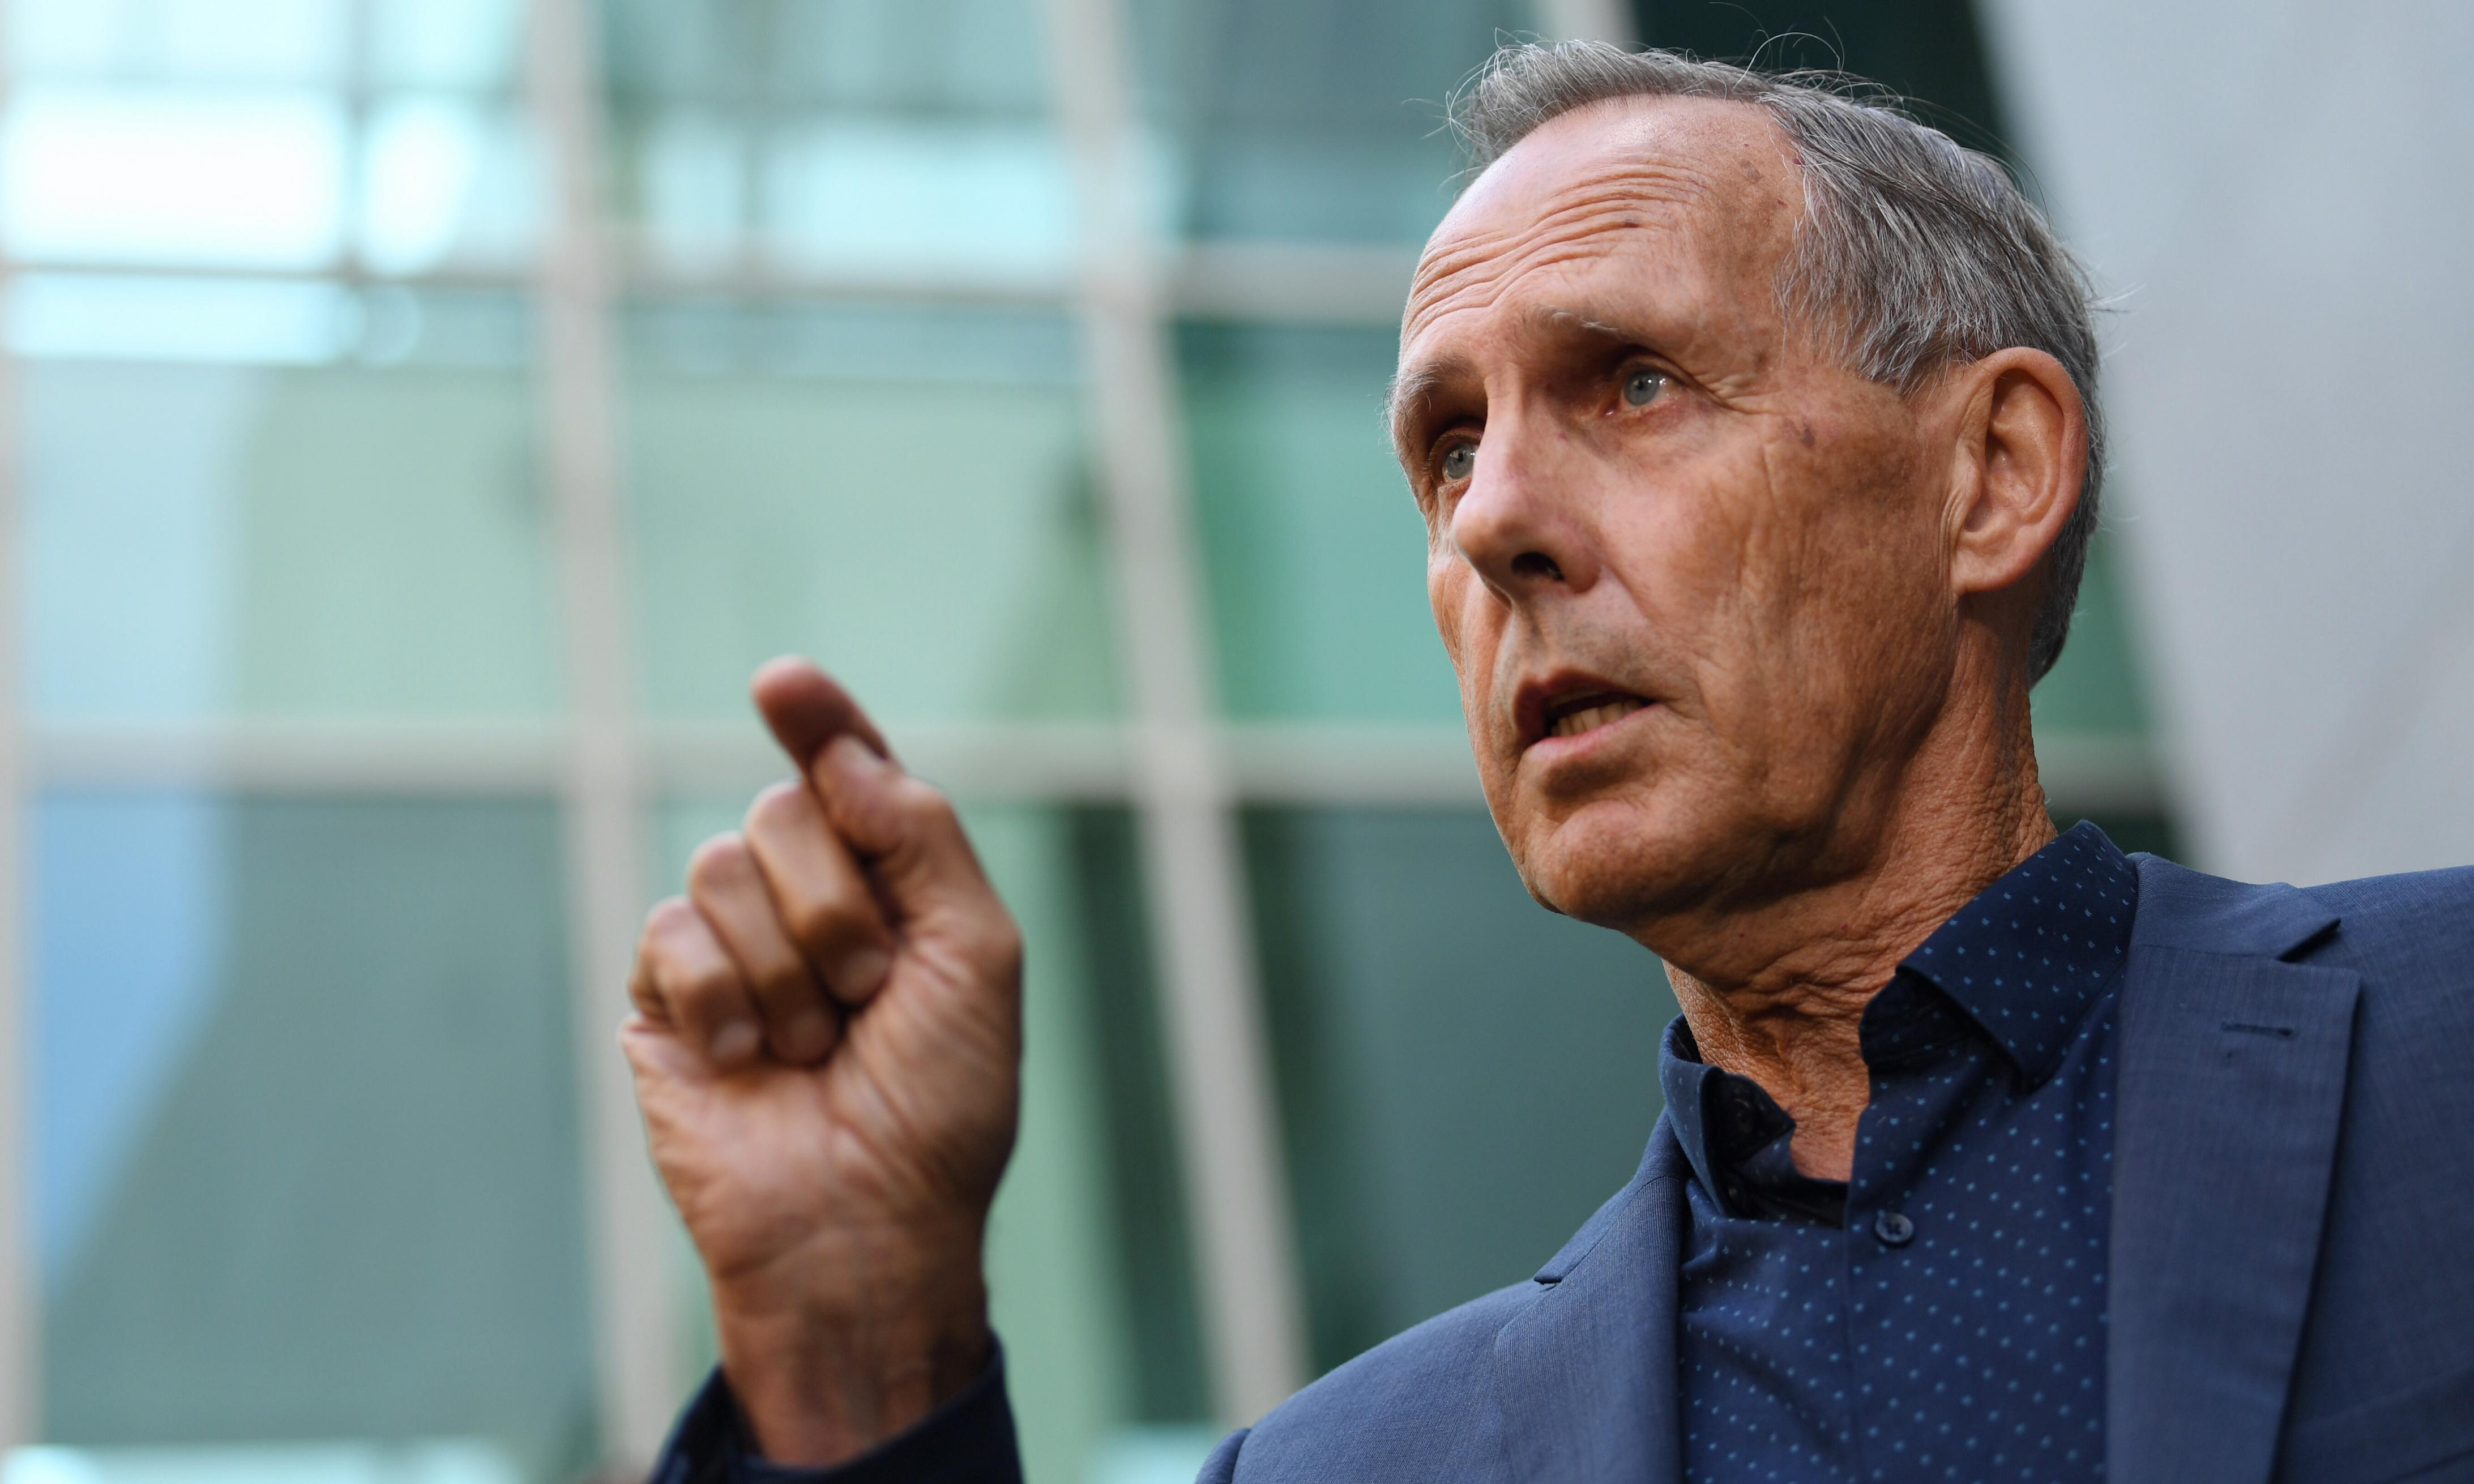 The attacks on Bob Brown for opposing a windfarm are exhausting and hypocritical